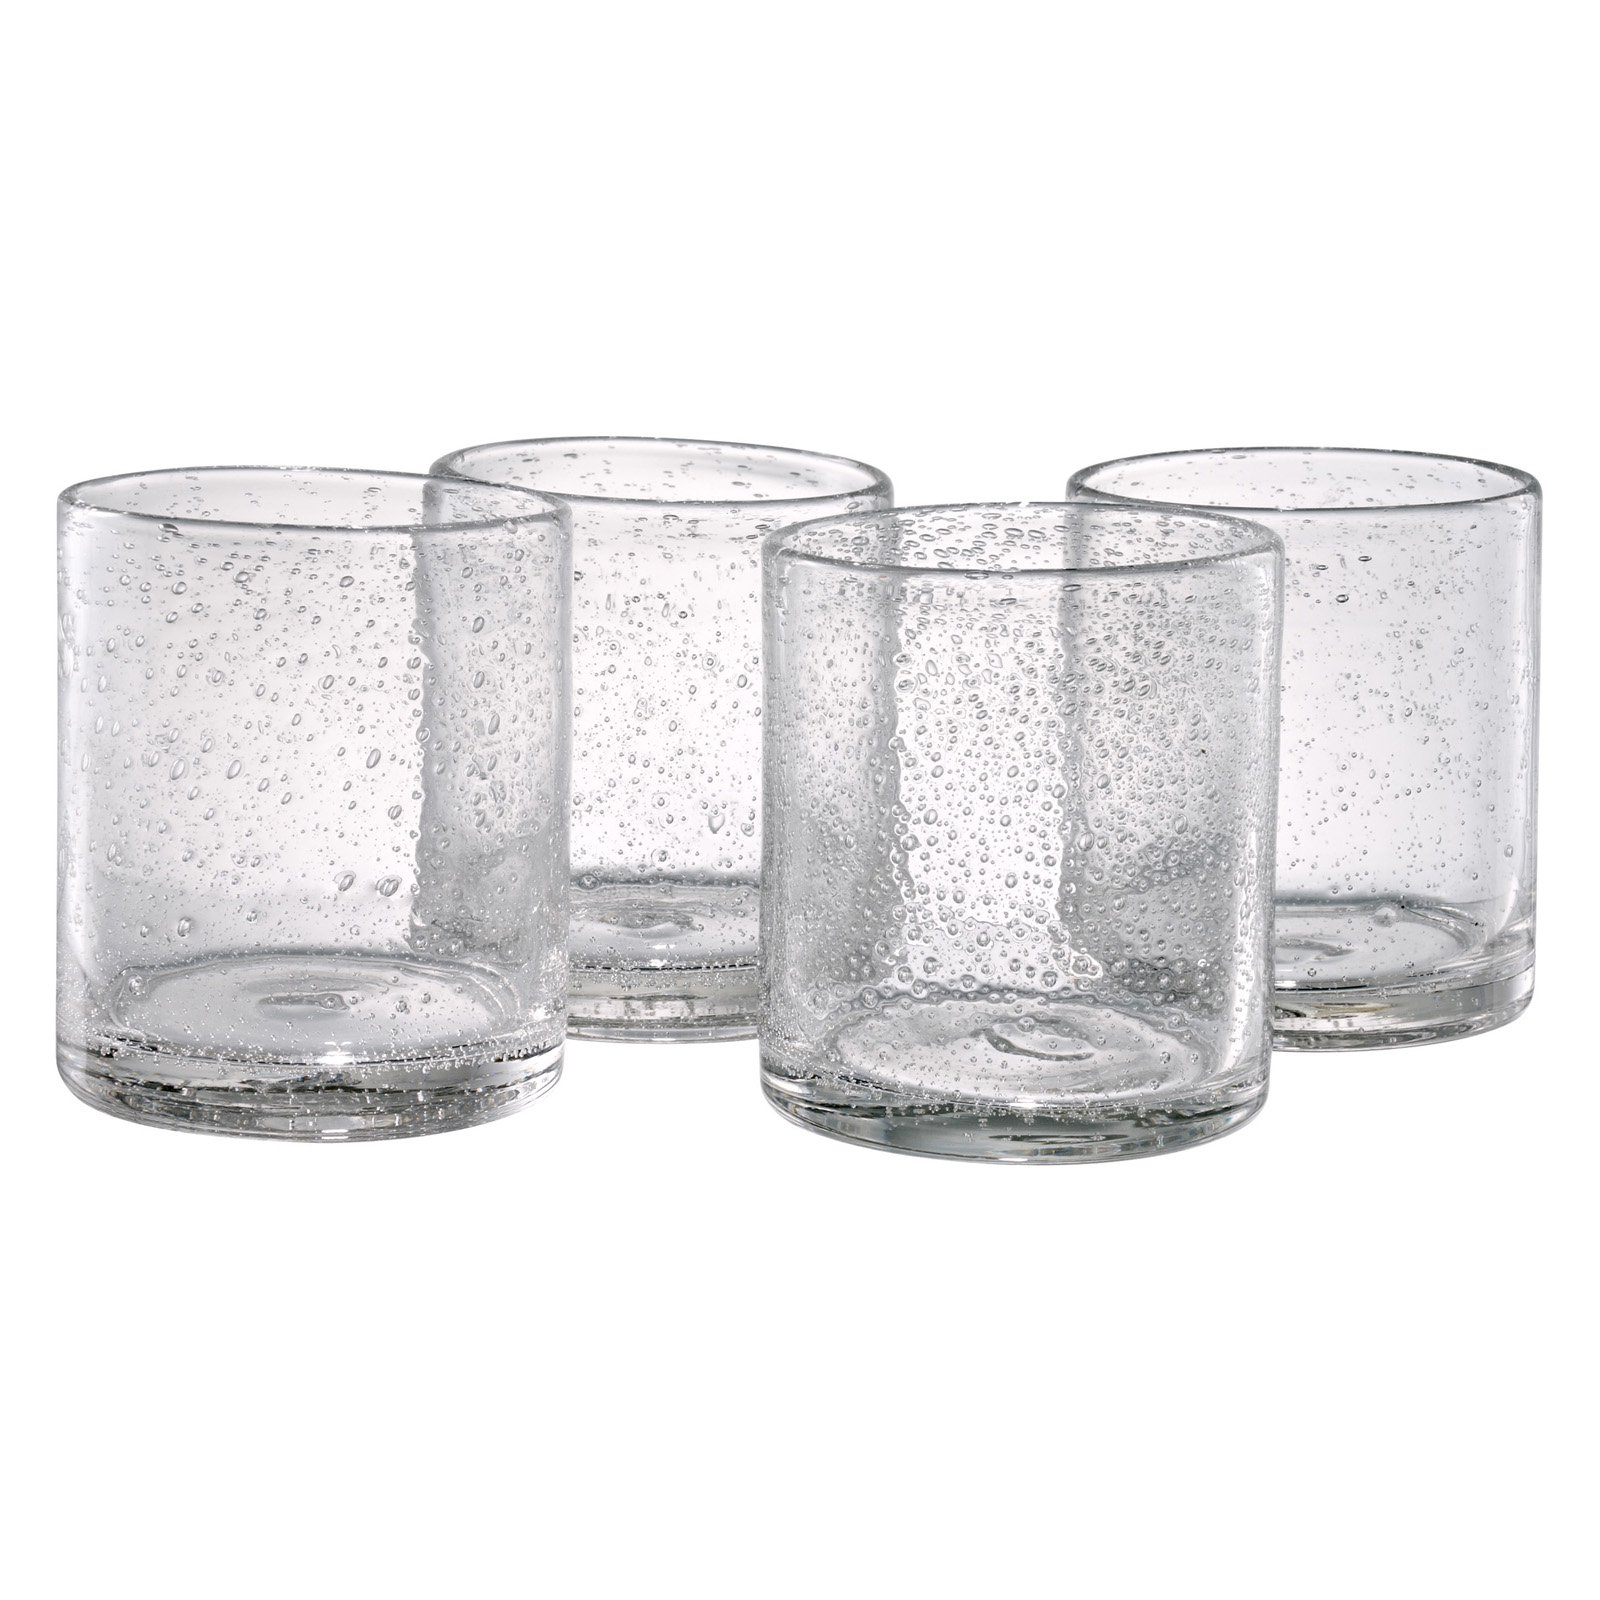 Artland Inc. Iris Bubble DOF Glasses - Set of 4